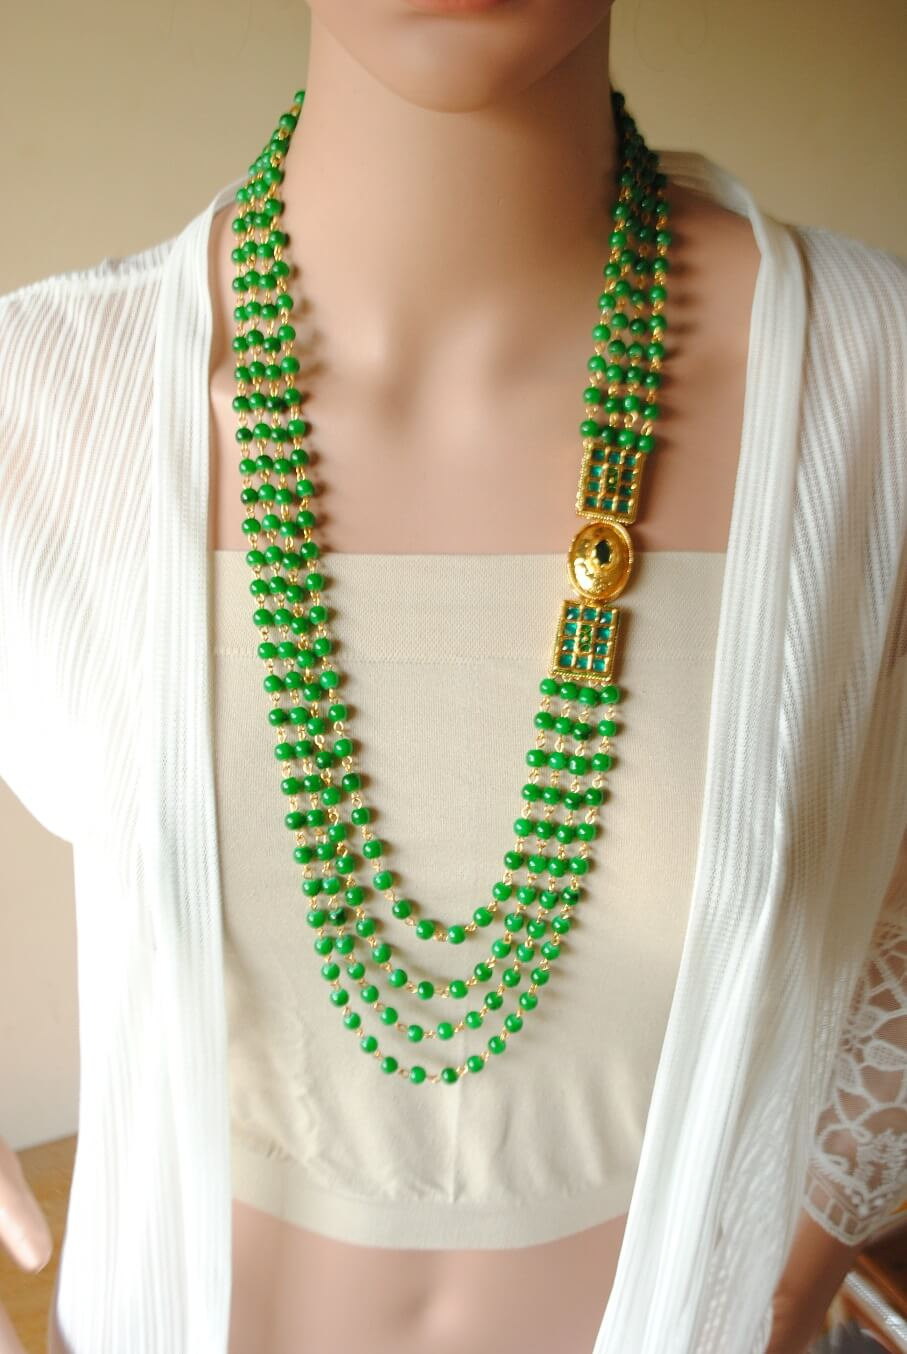 The Green Princess Necklace